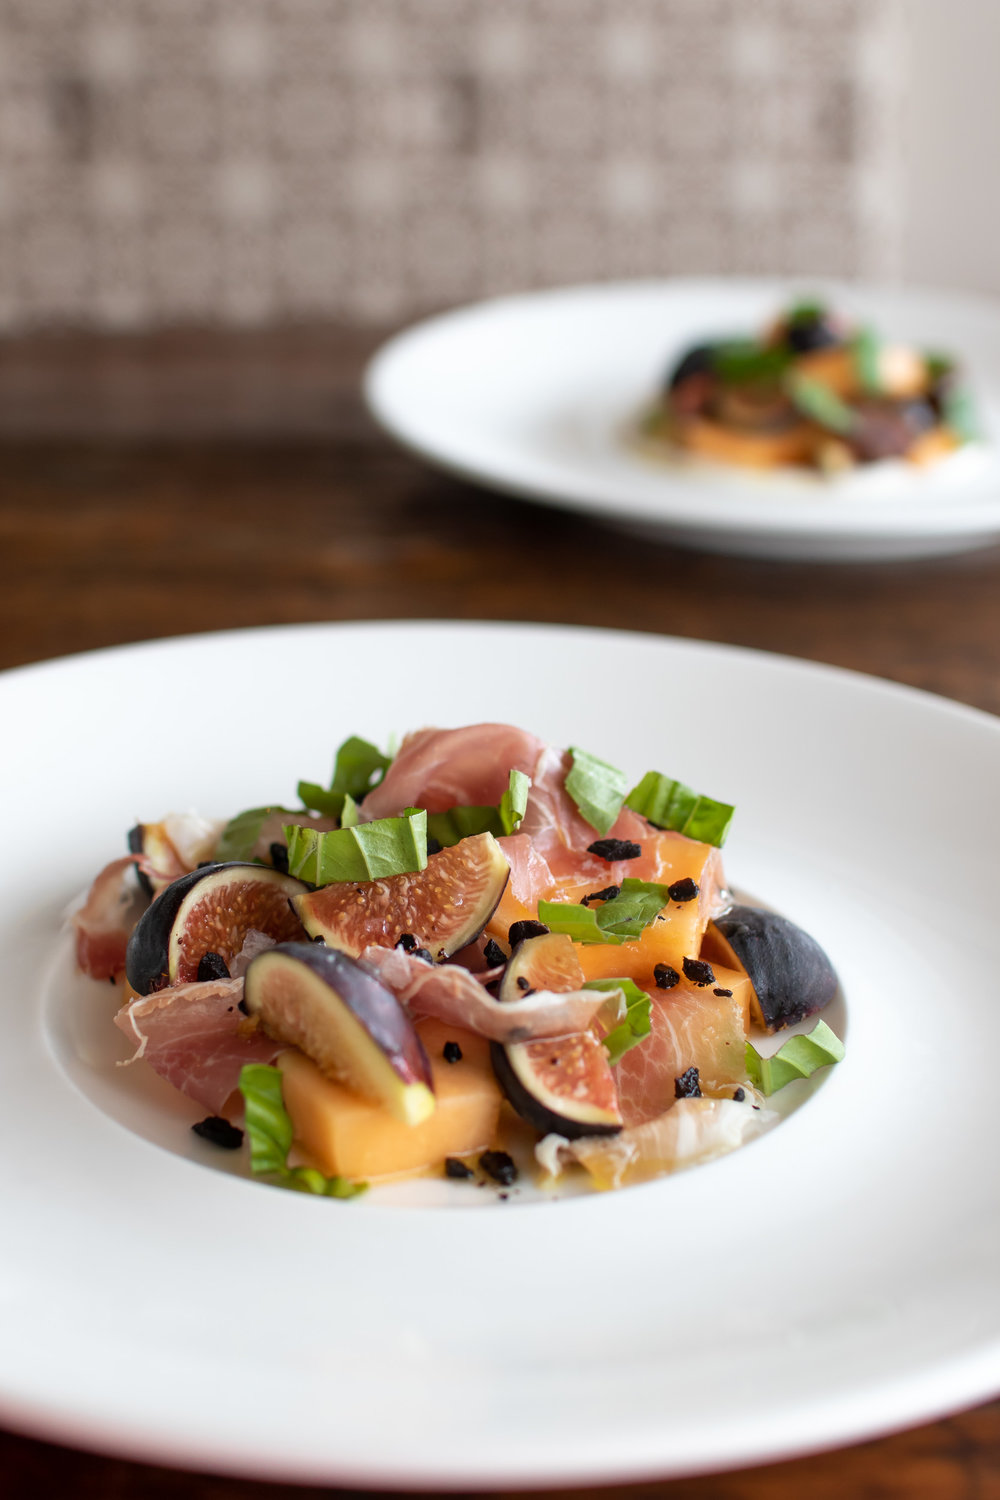 Figs & Melon with Prosciutto, Dried Black Olive & Basil // photo by Stephanie Cornell